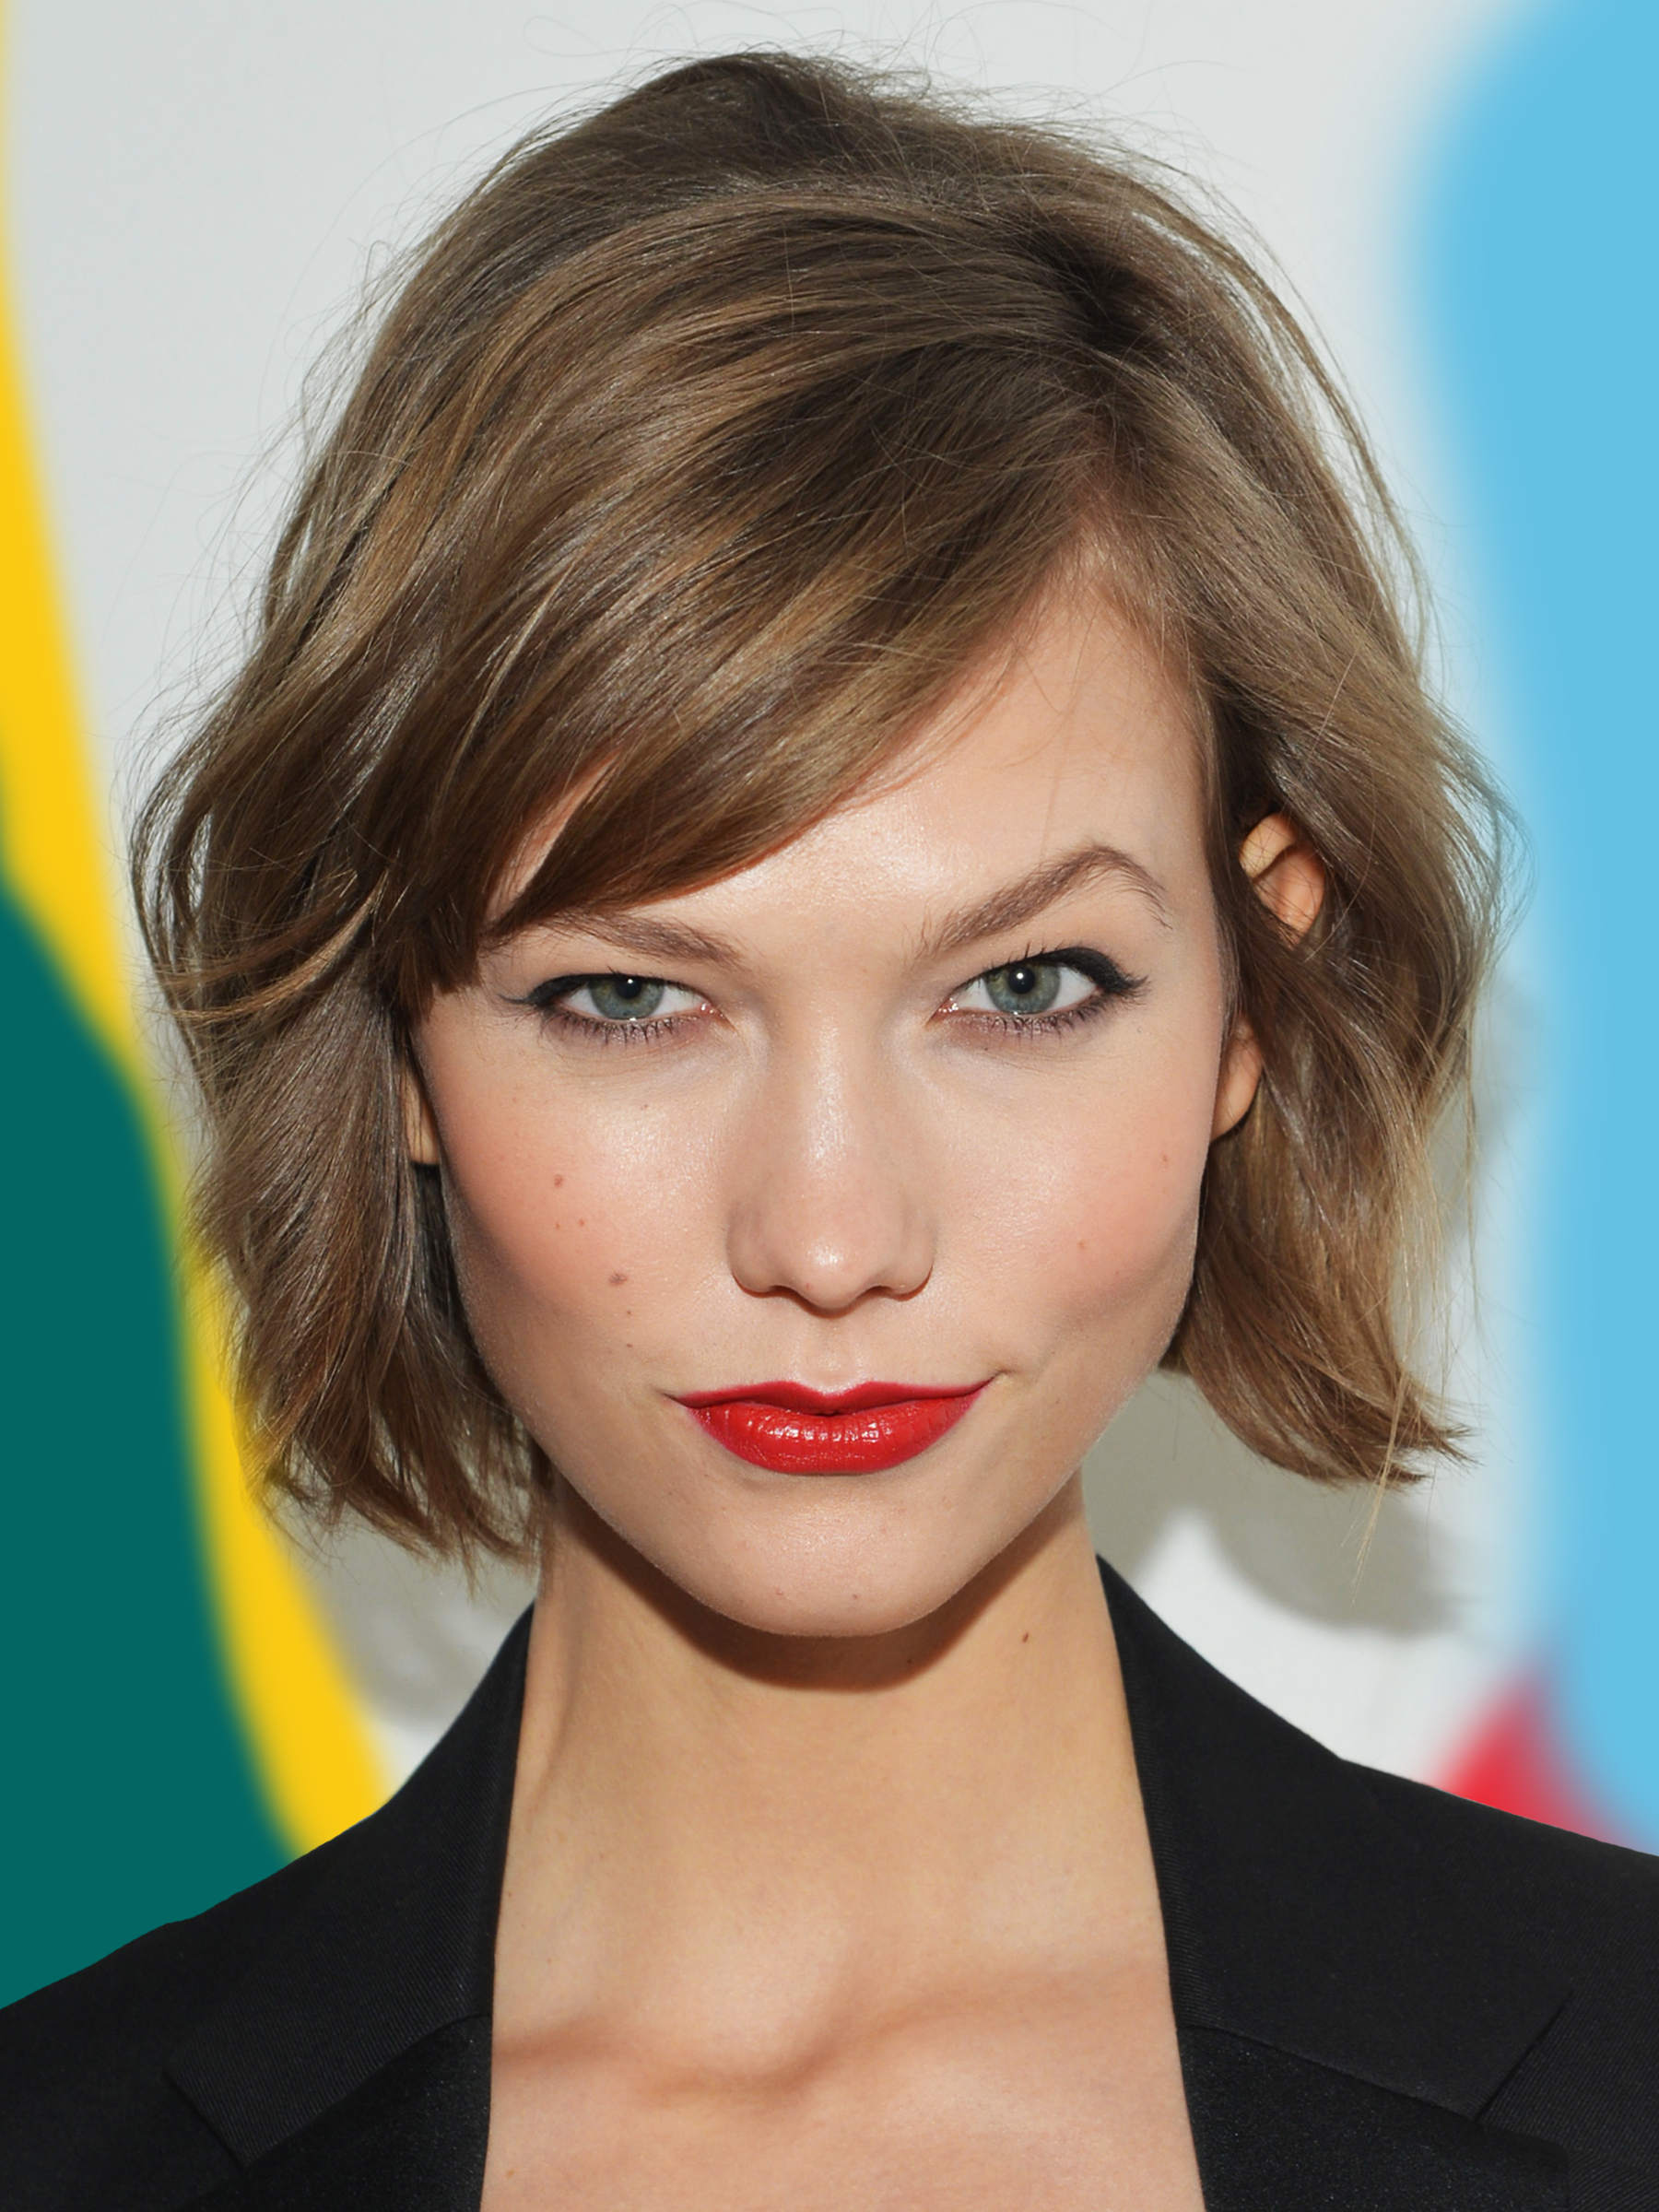 Popular Hairstyles Celebrity Photos Over The Years